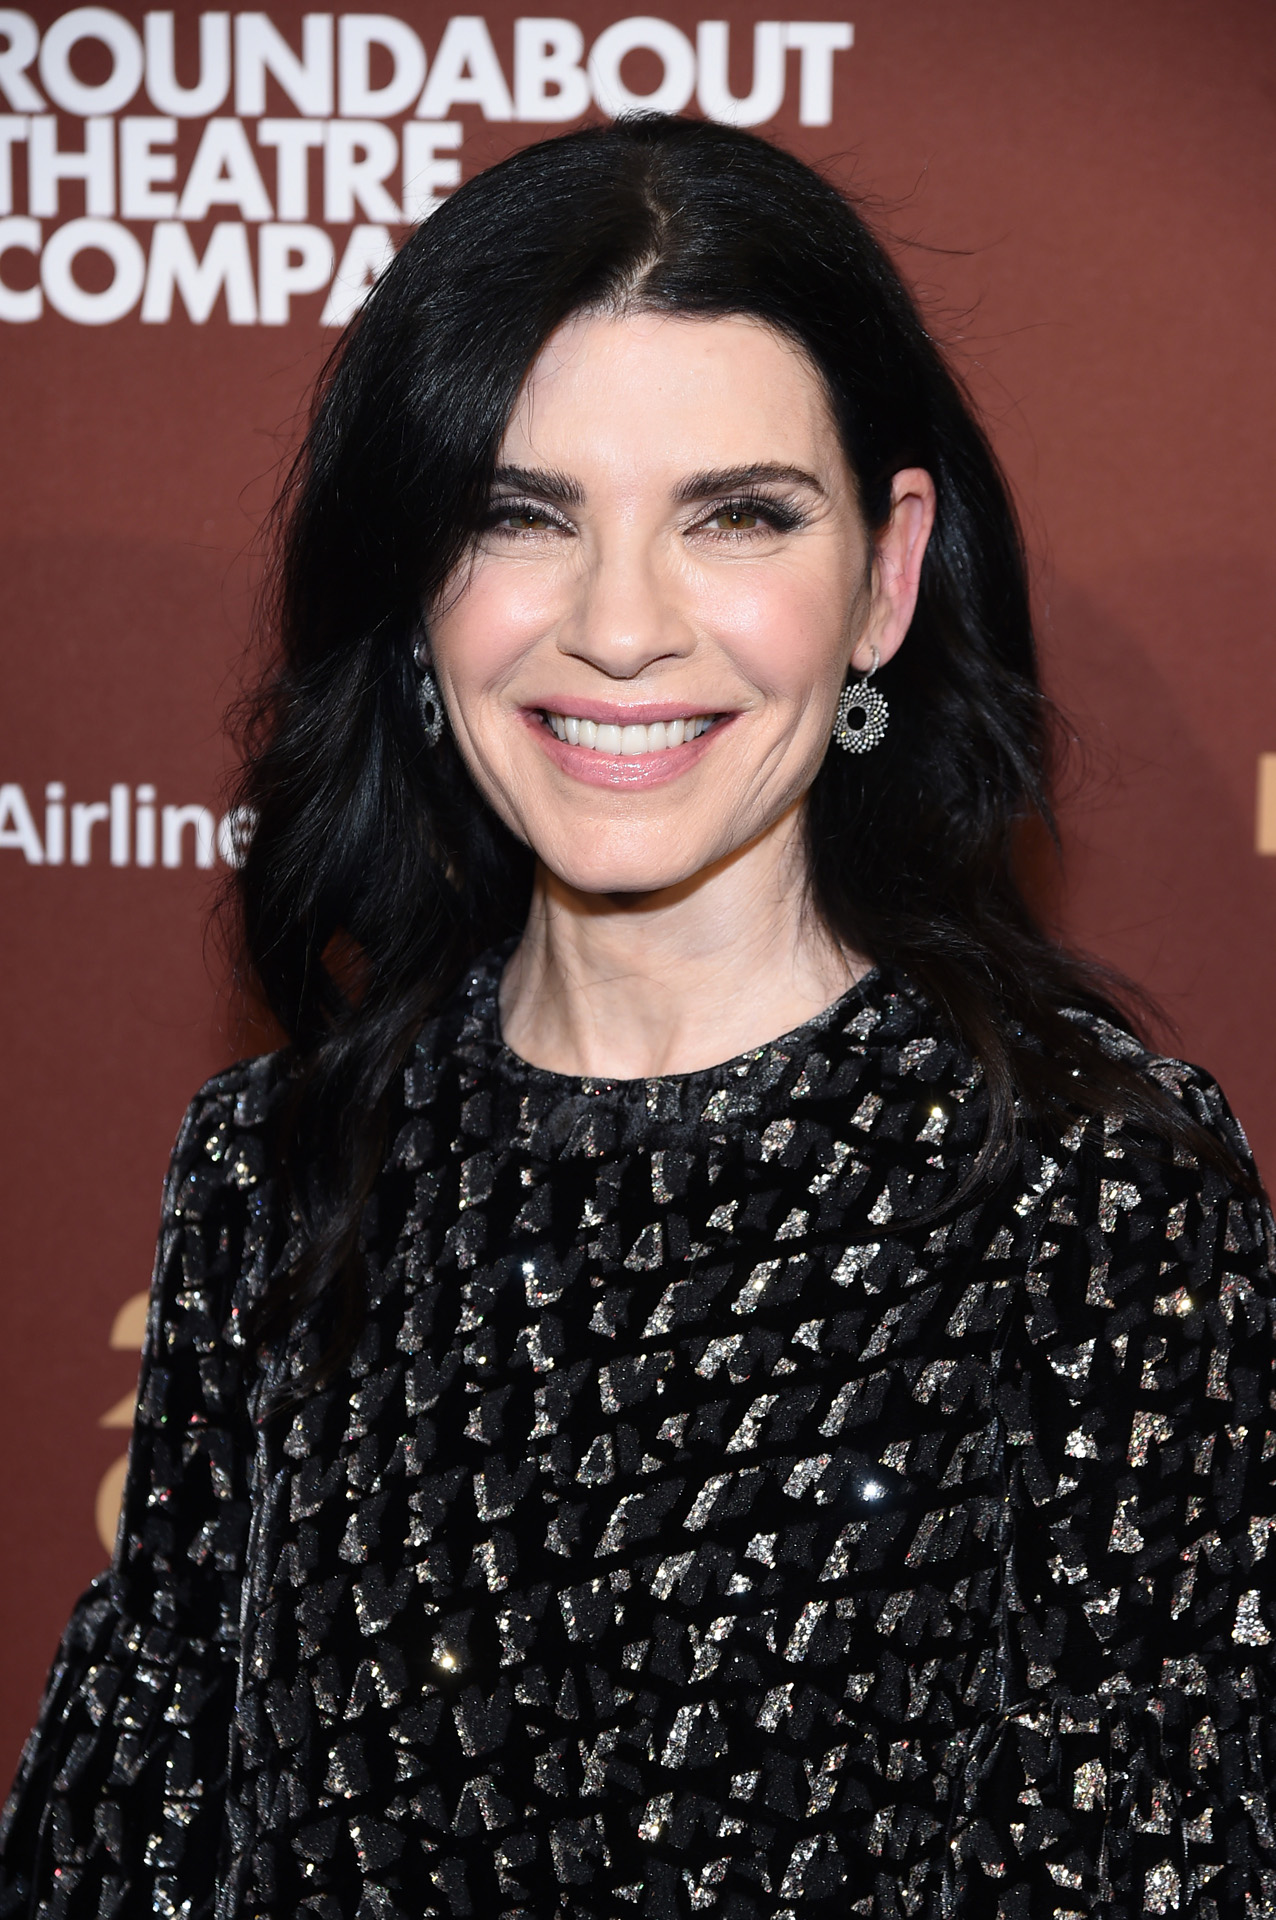 NEW YORK, NEW YORK - MARCH 02: Julianna Margulies attends the Roundabout Theater's 2020 Gala at The Ziegfeld Ballroom on March 02, 2020 in New York City. Jamie McCarthy/Getty Images/AFP